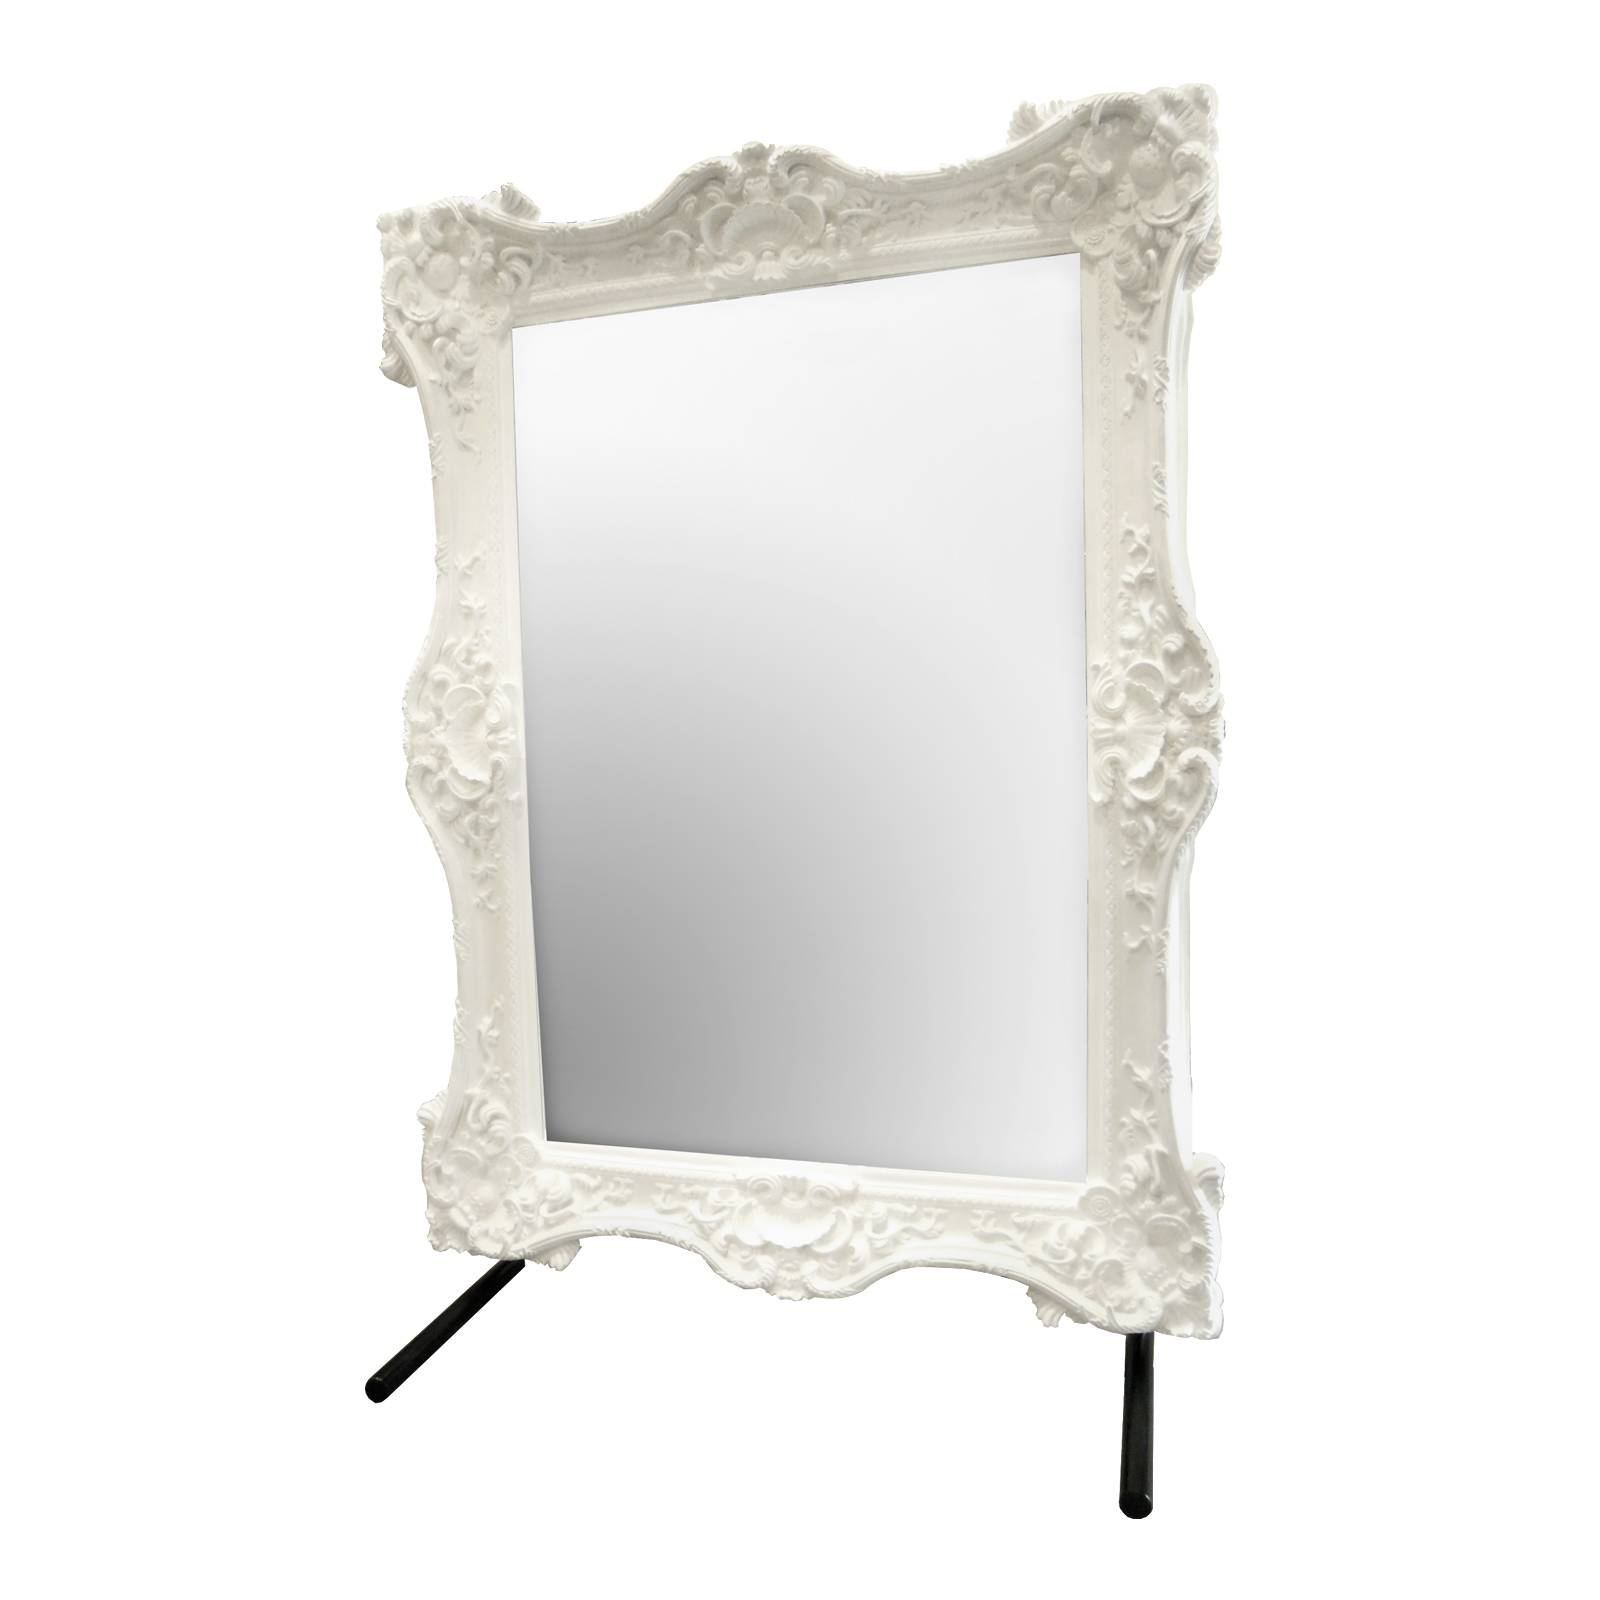 Bathroom: Astounding Baroque Mirror With Unique Frame For Bathroom with regard to White Baroque Mirrors (Image 7 of 25)